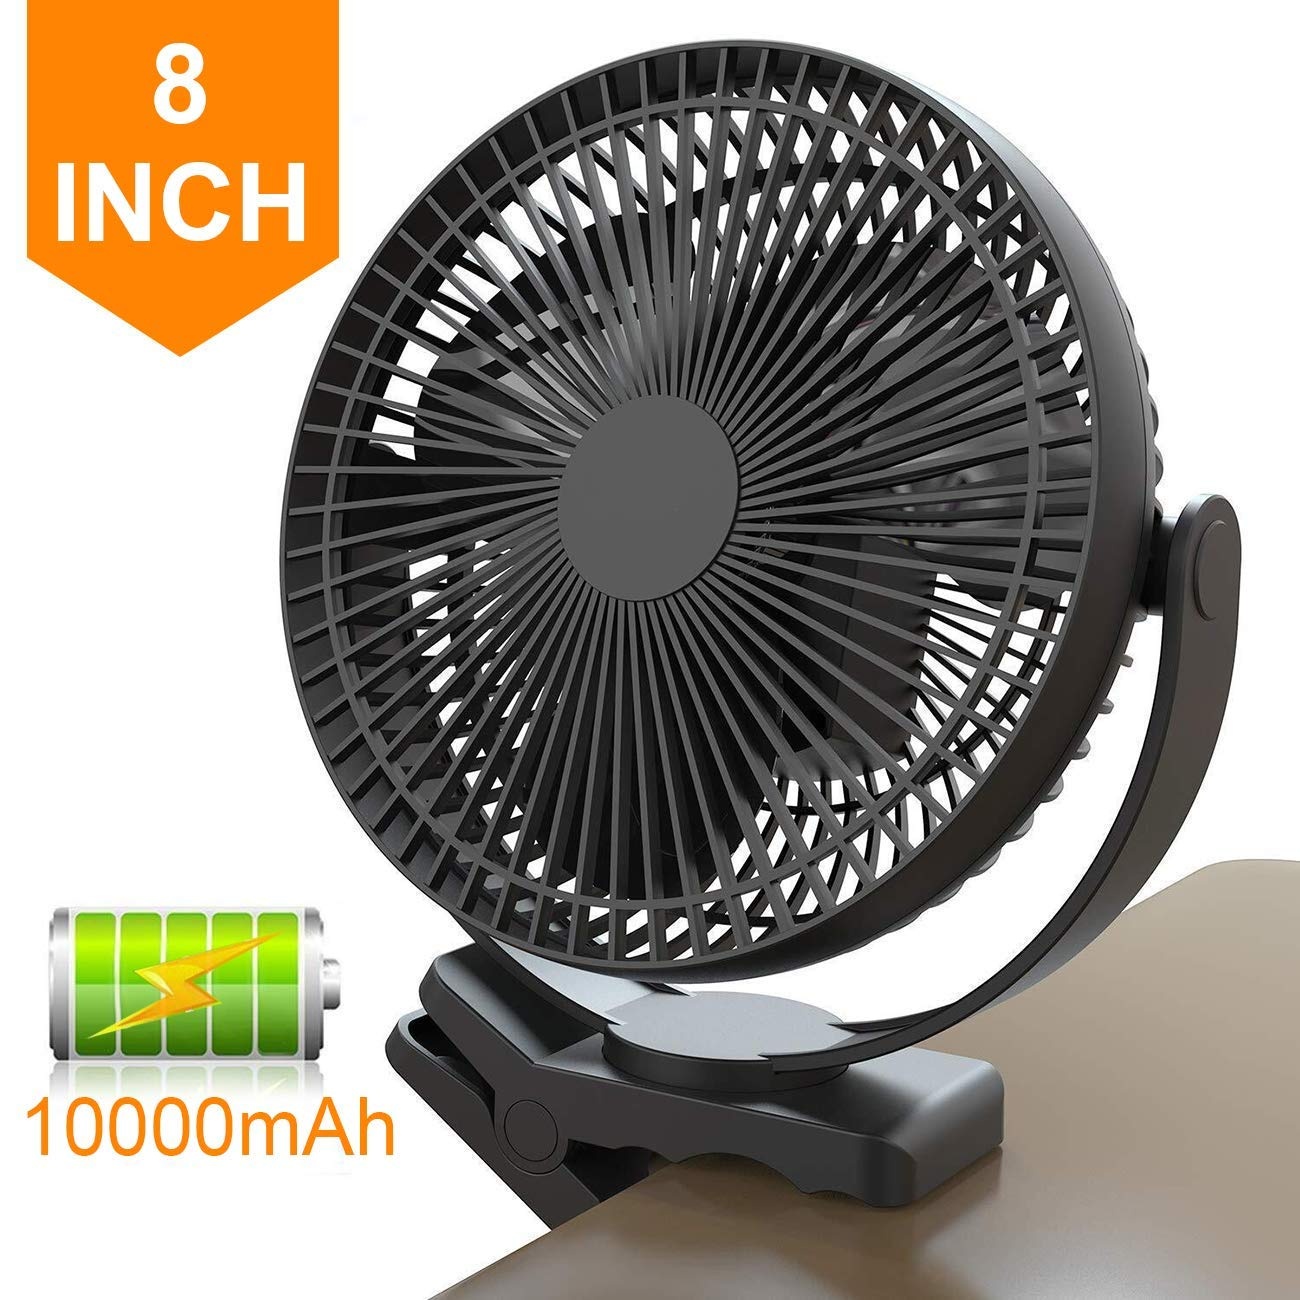 8 Inch Battery Operated Clip on Fan, 10000mAh Rechargeable Fan for Baby, 4 Speeds & 10W Fast Charging, Portable Cooling USB Fan for Baby Stroller Golf Cart Car Gym Treadmill,2 in 1 Desk&Clip Fan-Black